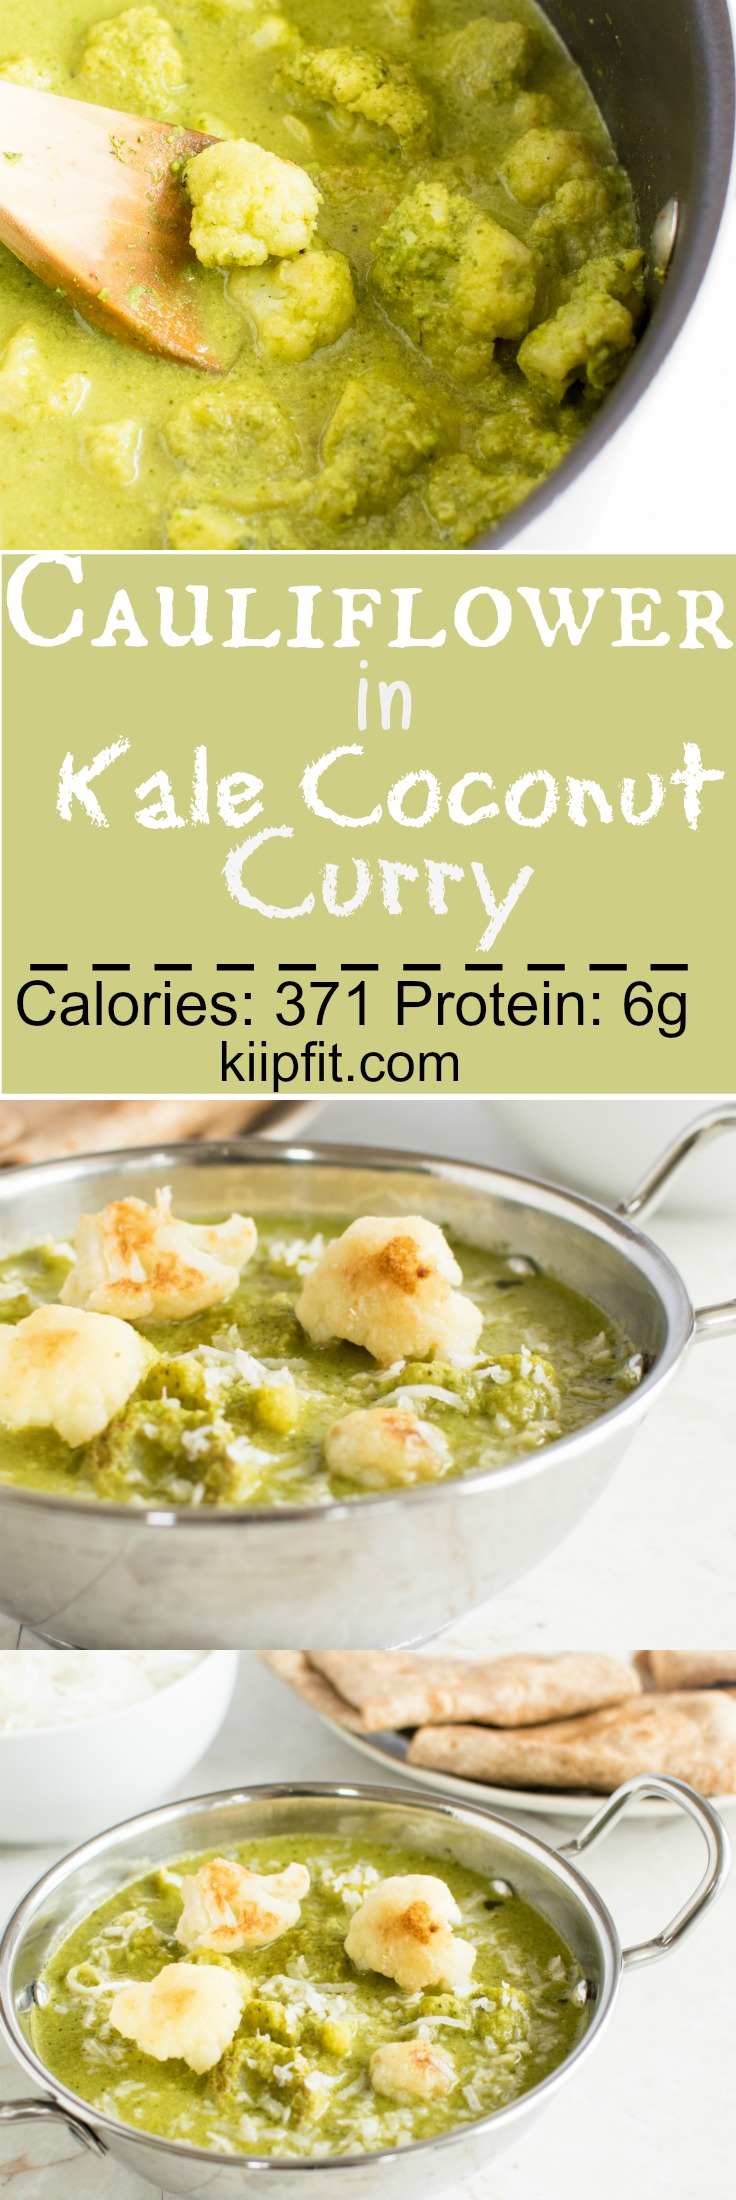 Cauliflower in Kale Coconut Curry